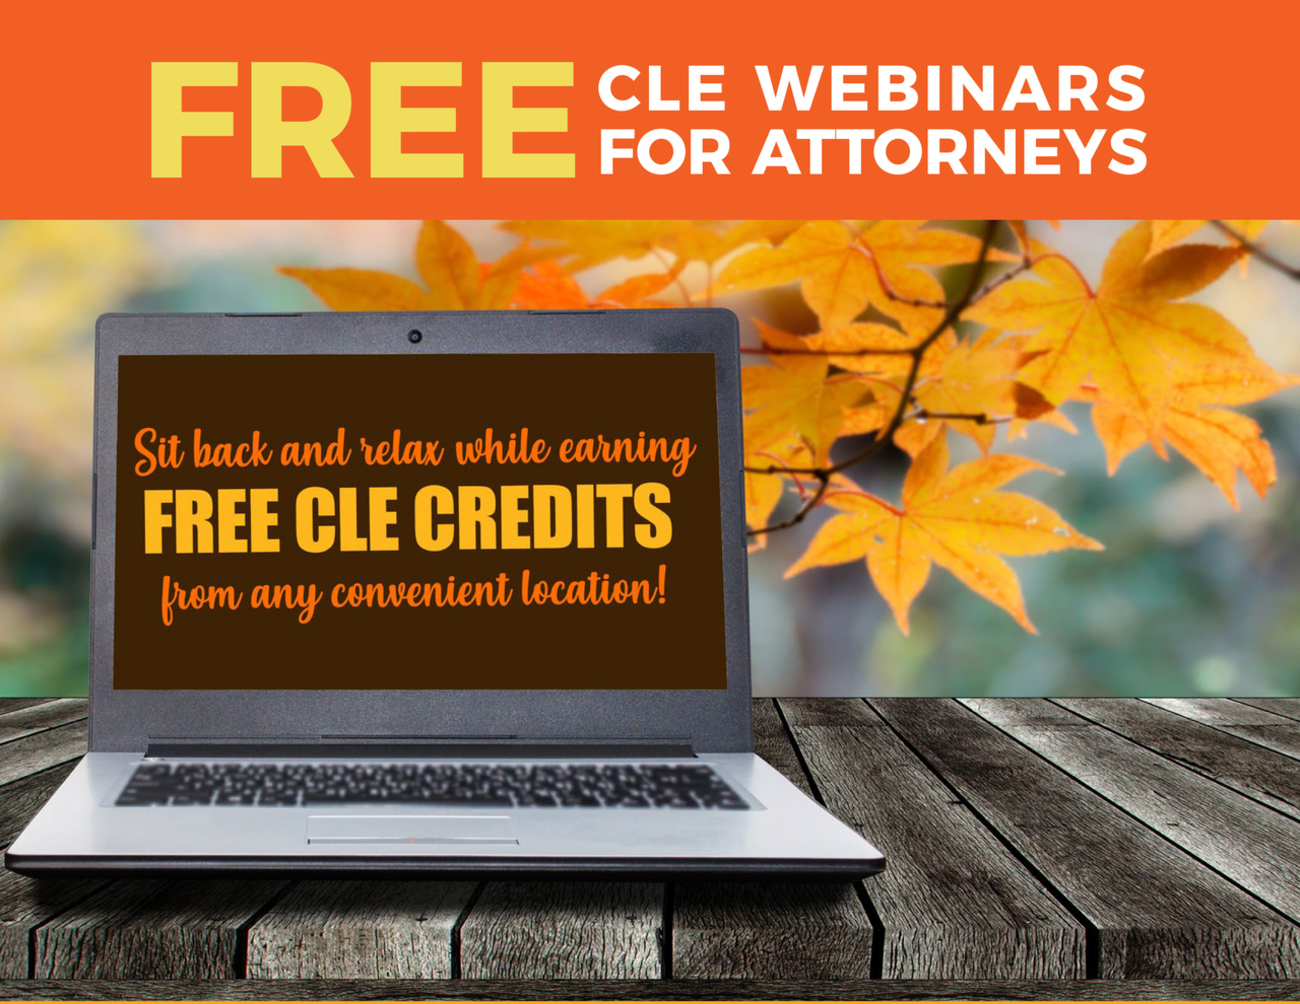 Free CLE Webinar for Attorneys